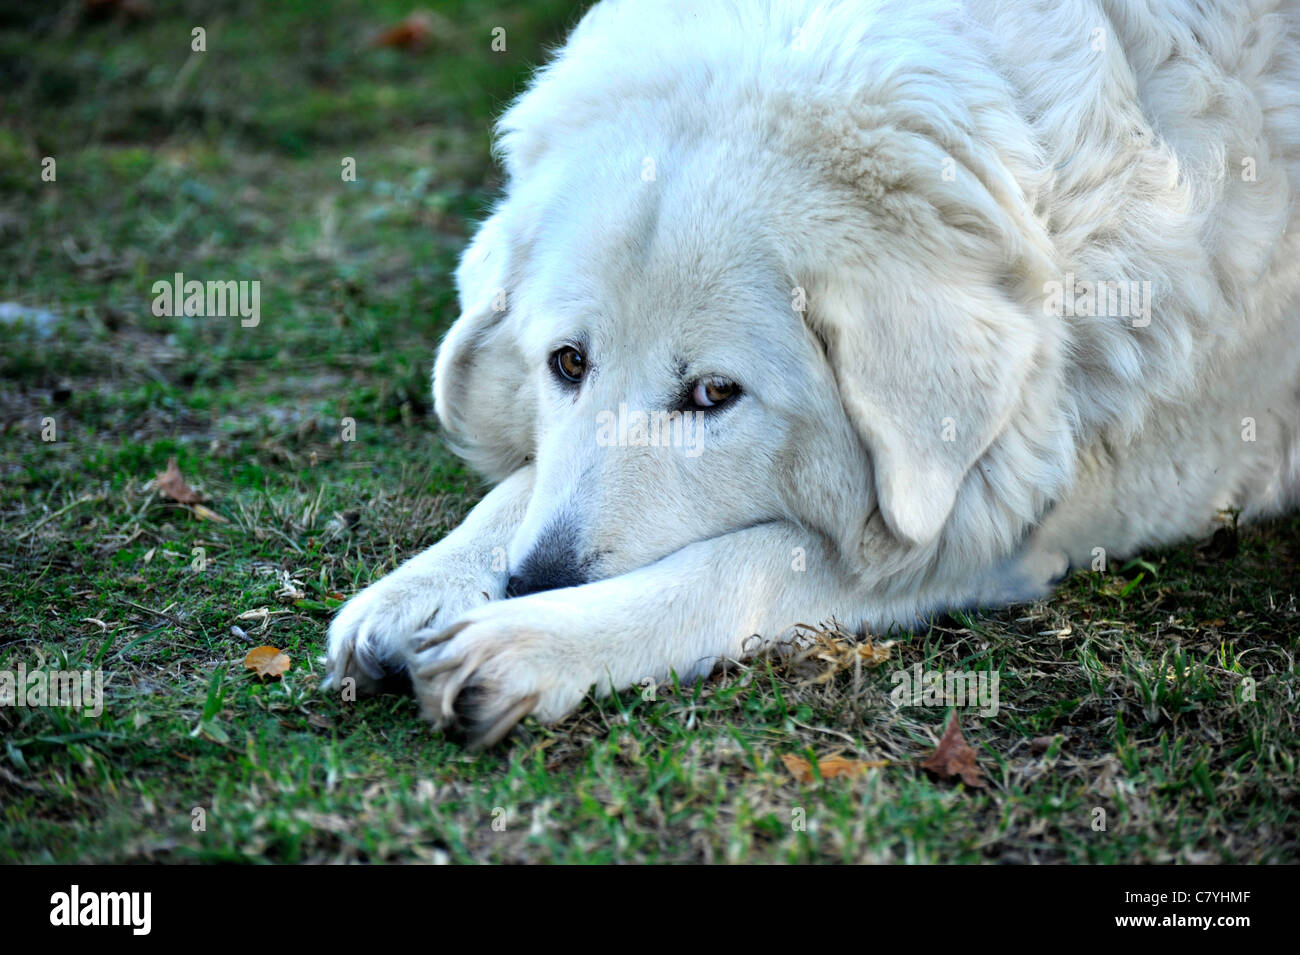 A Maremma sheepdog at rest. - Stock Image